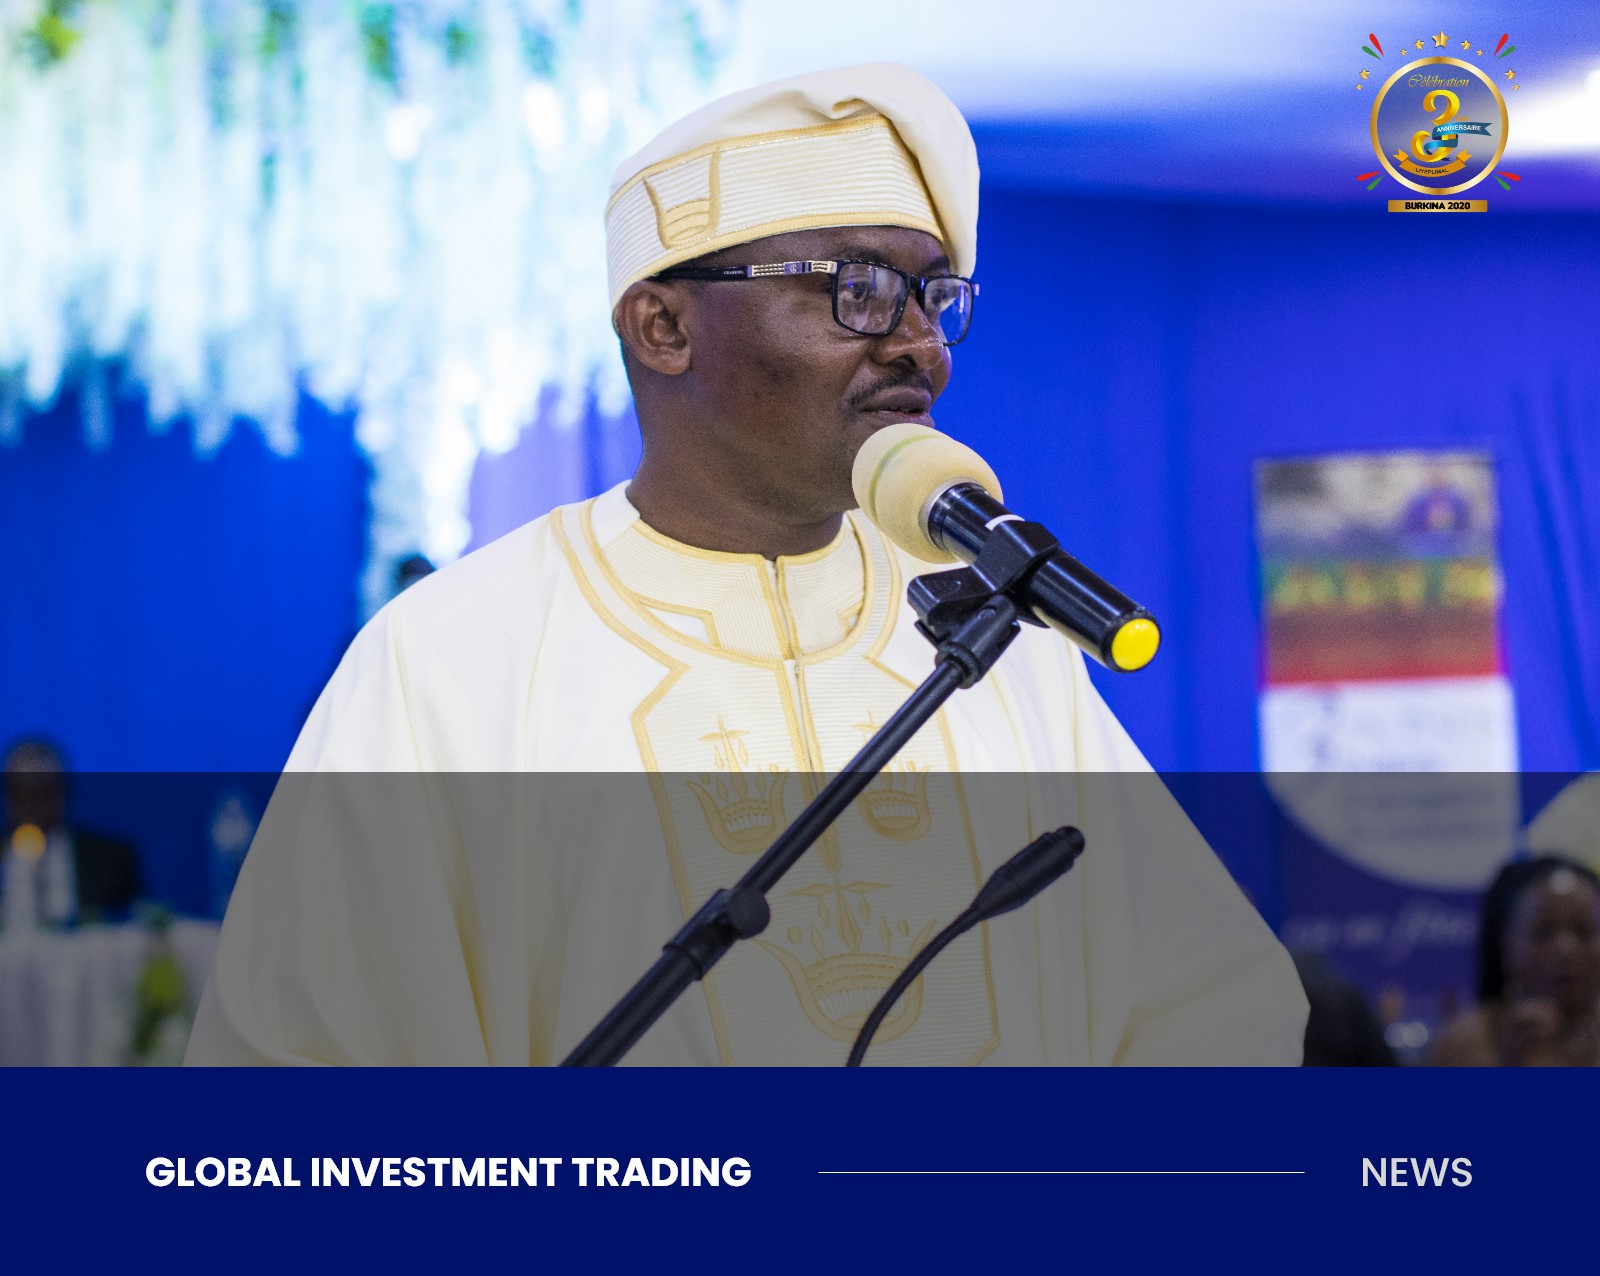 Speech of CEO - Global Investment Trading Mr Emile Parfait SIMB